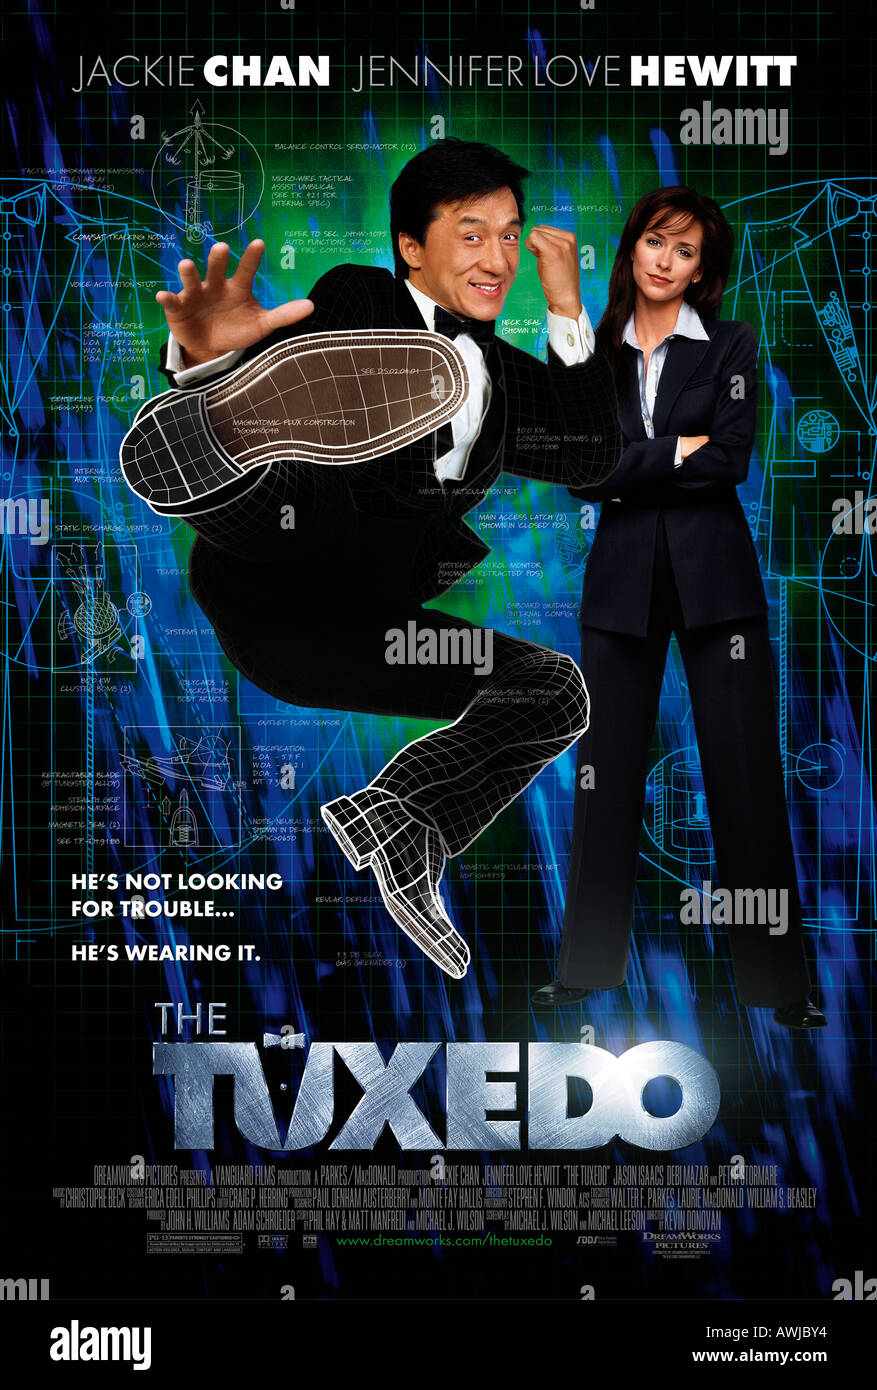 THE TUXEDO poster for the 2002 Dream Works film with Jackie Chan and Jennifer Love Hewitt - Stock Image